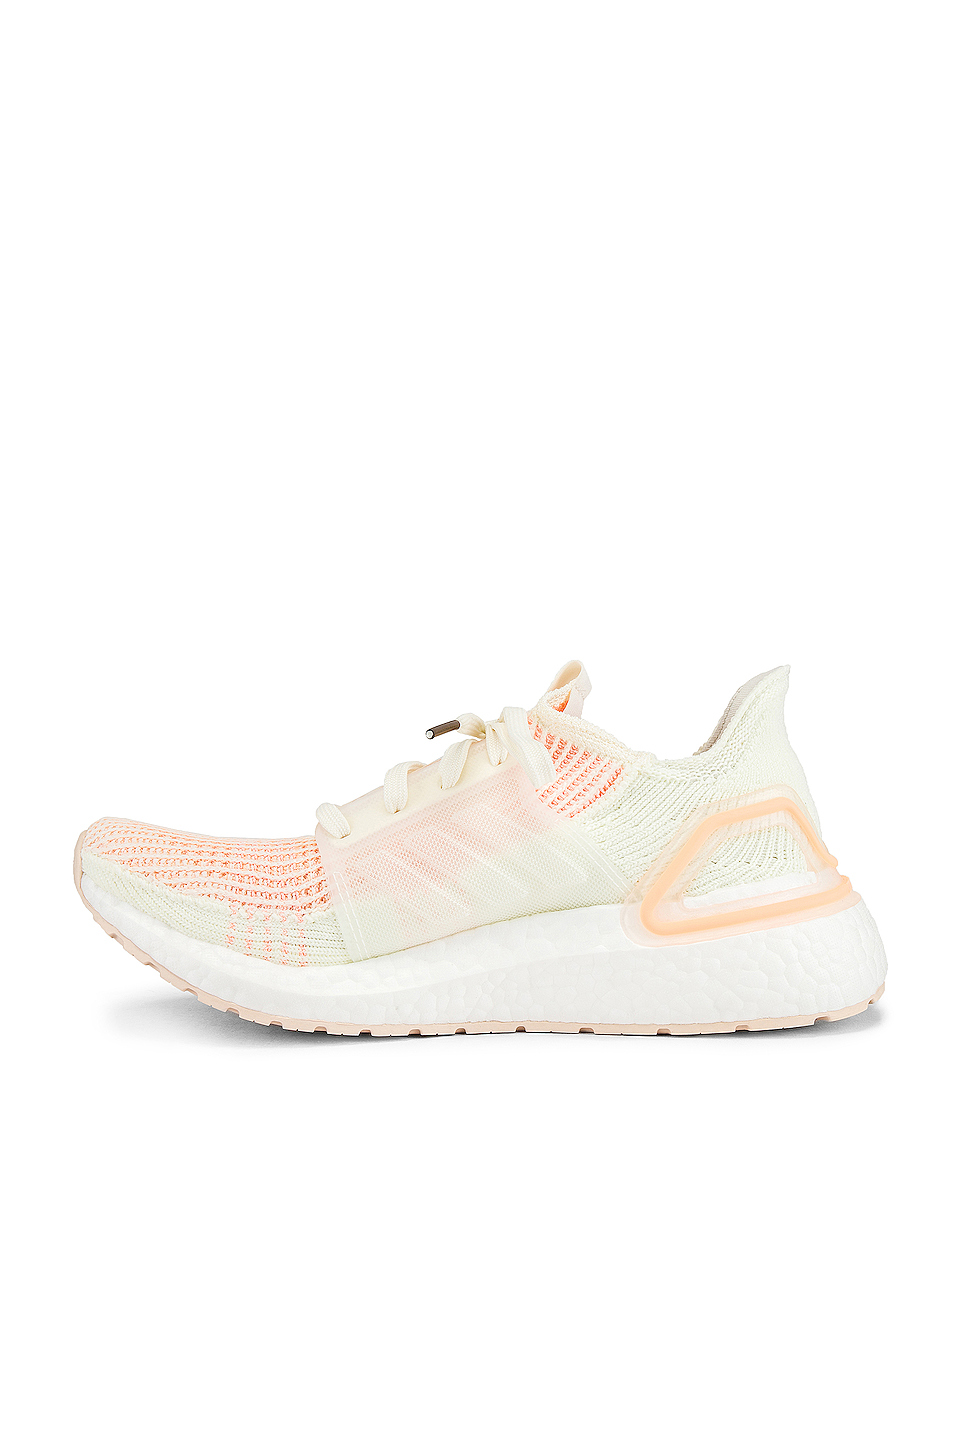 adidas Originals Ultraboost Sneaker